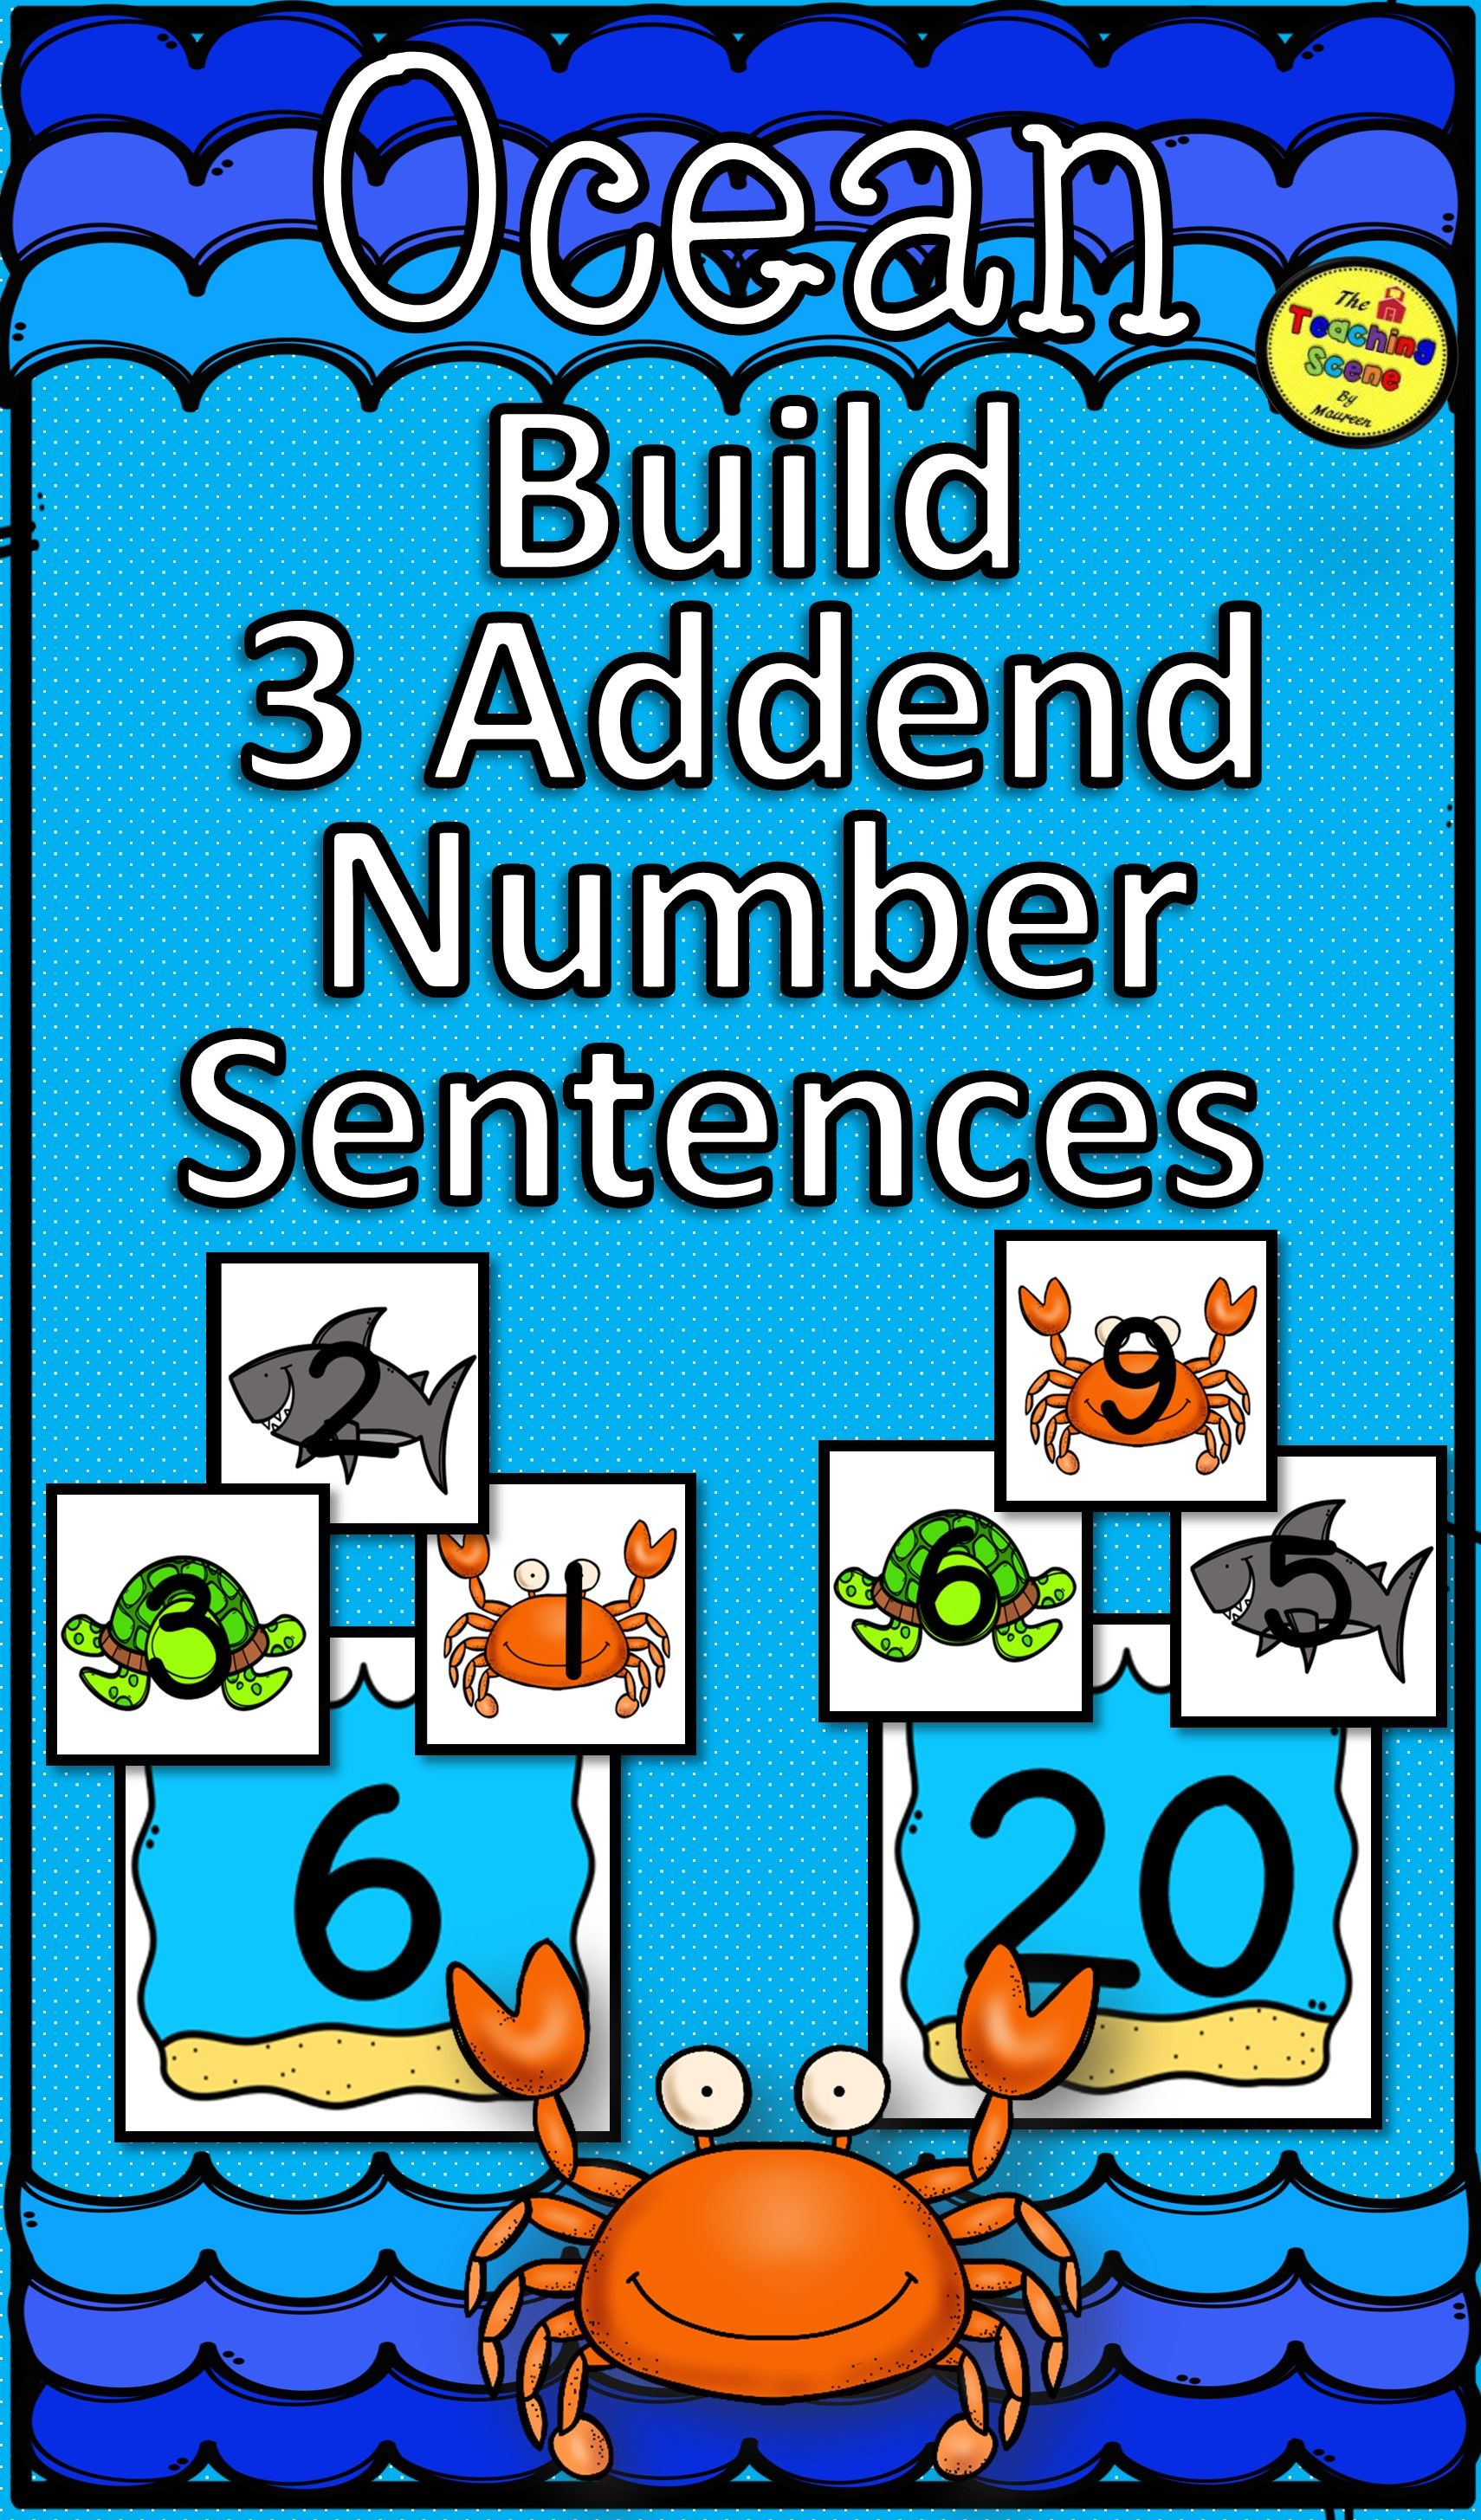 Ocean Build 3 Addend Addition Or Subtraction Number